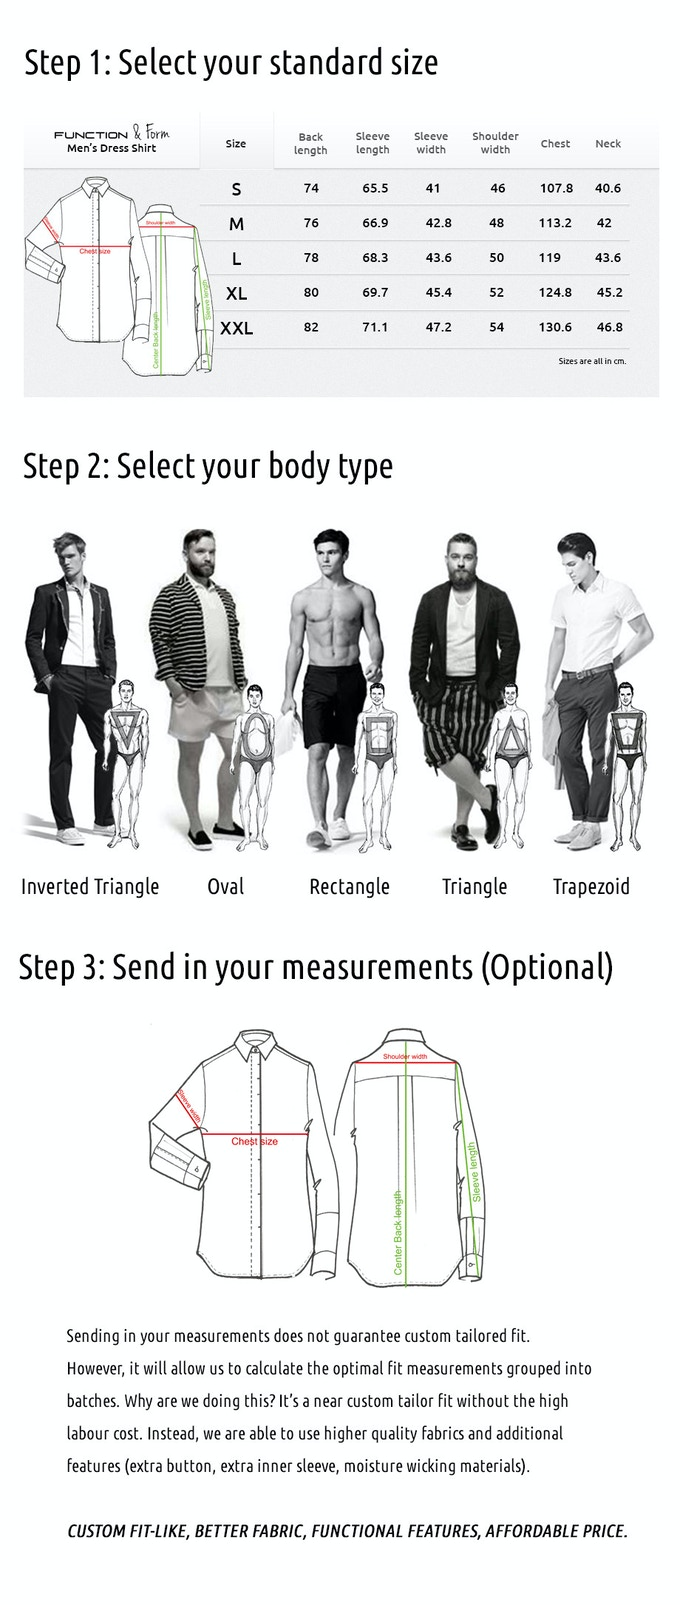 +Add Functionality to your Dress Shirts by Function and